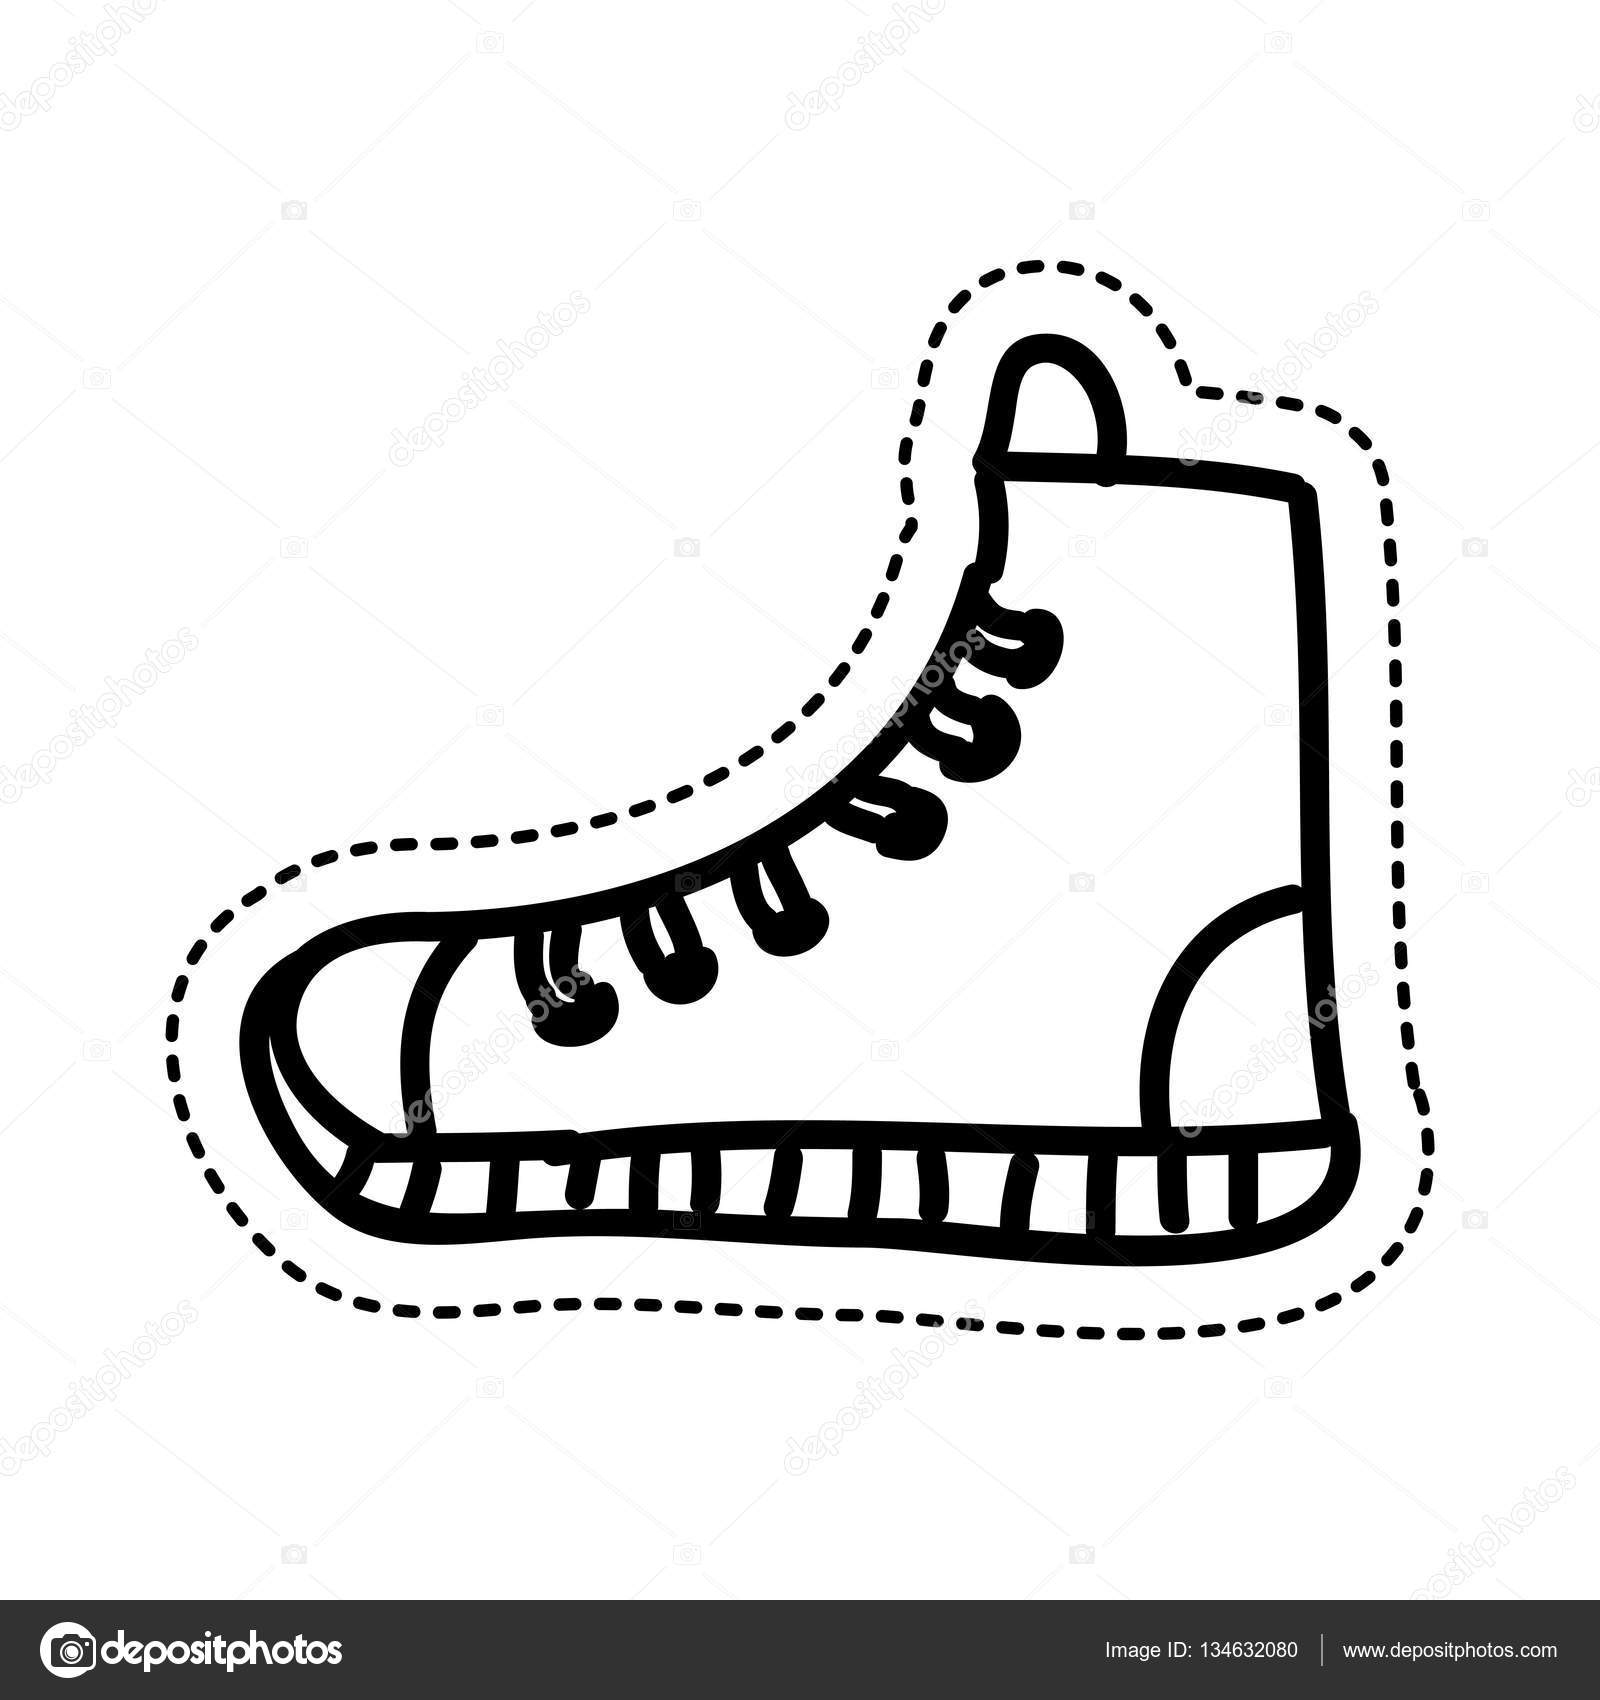 Shoe young style icon — Stock Vector © yupiramos #134632080.